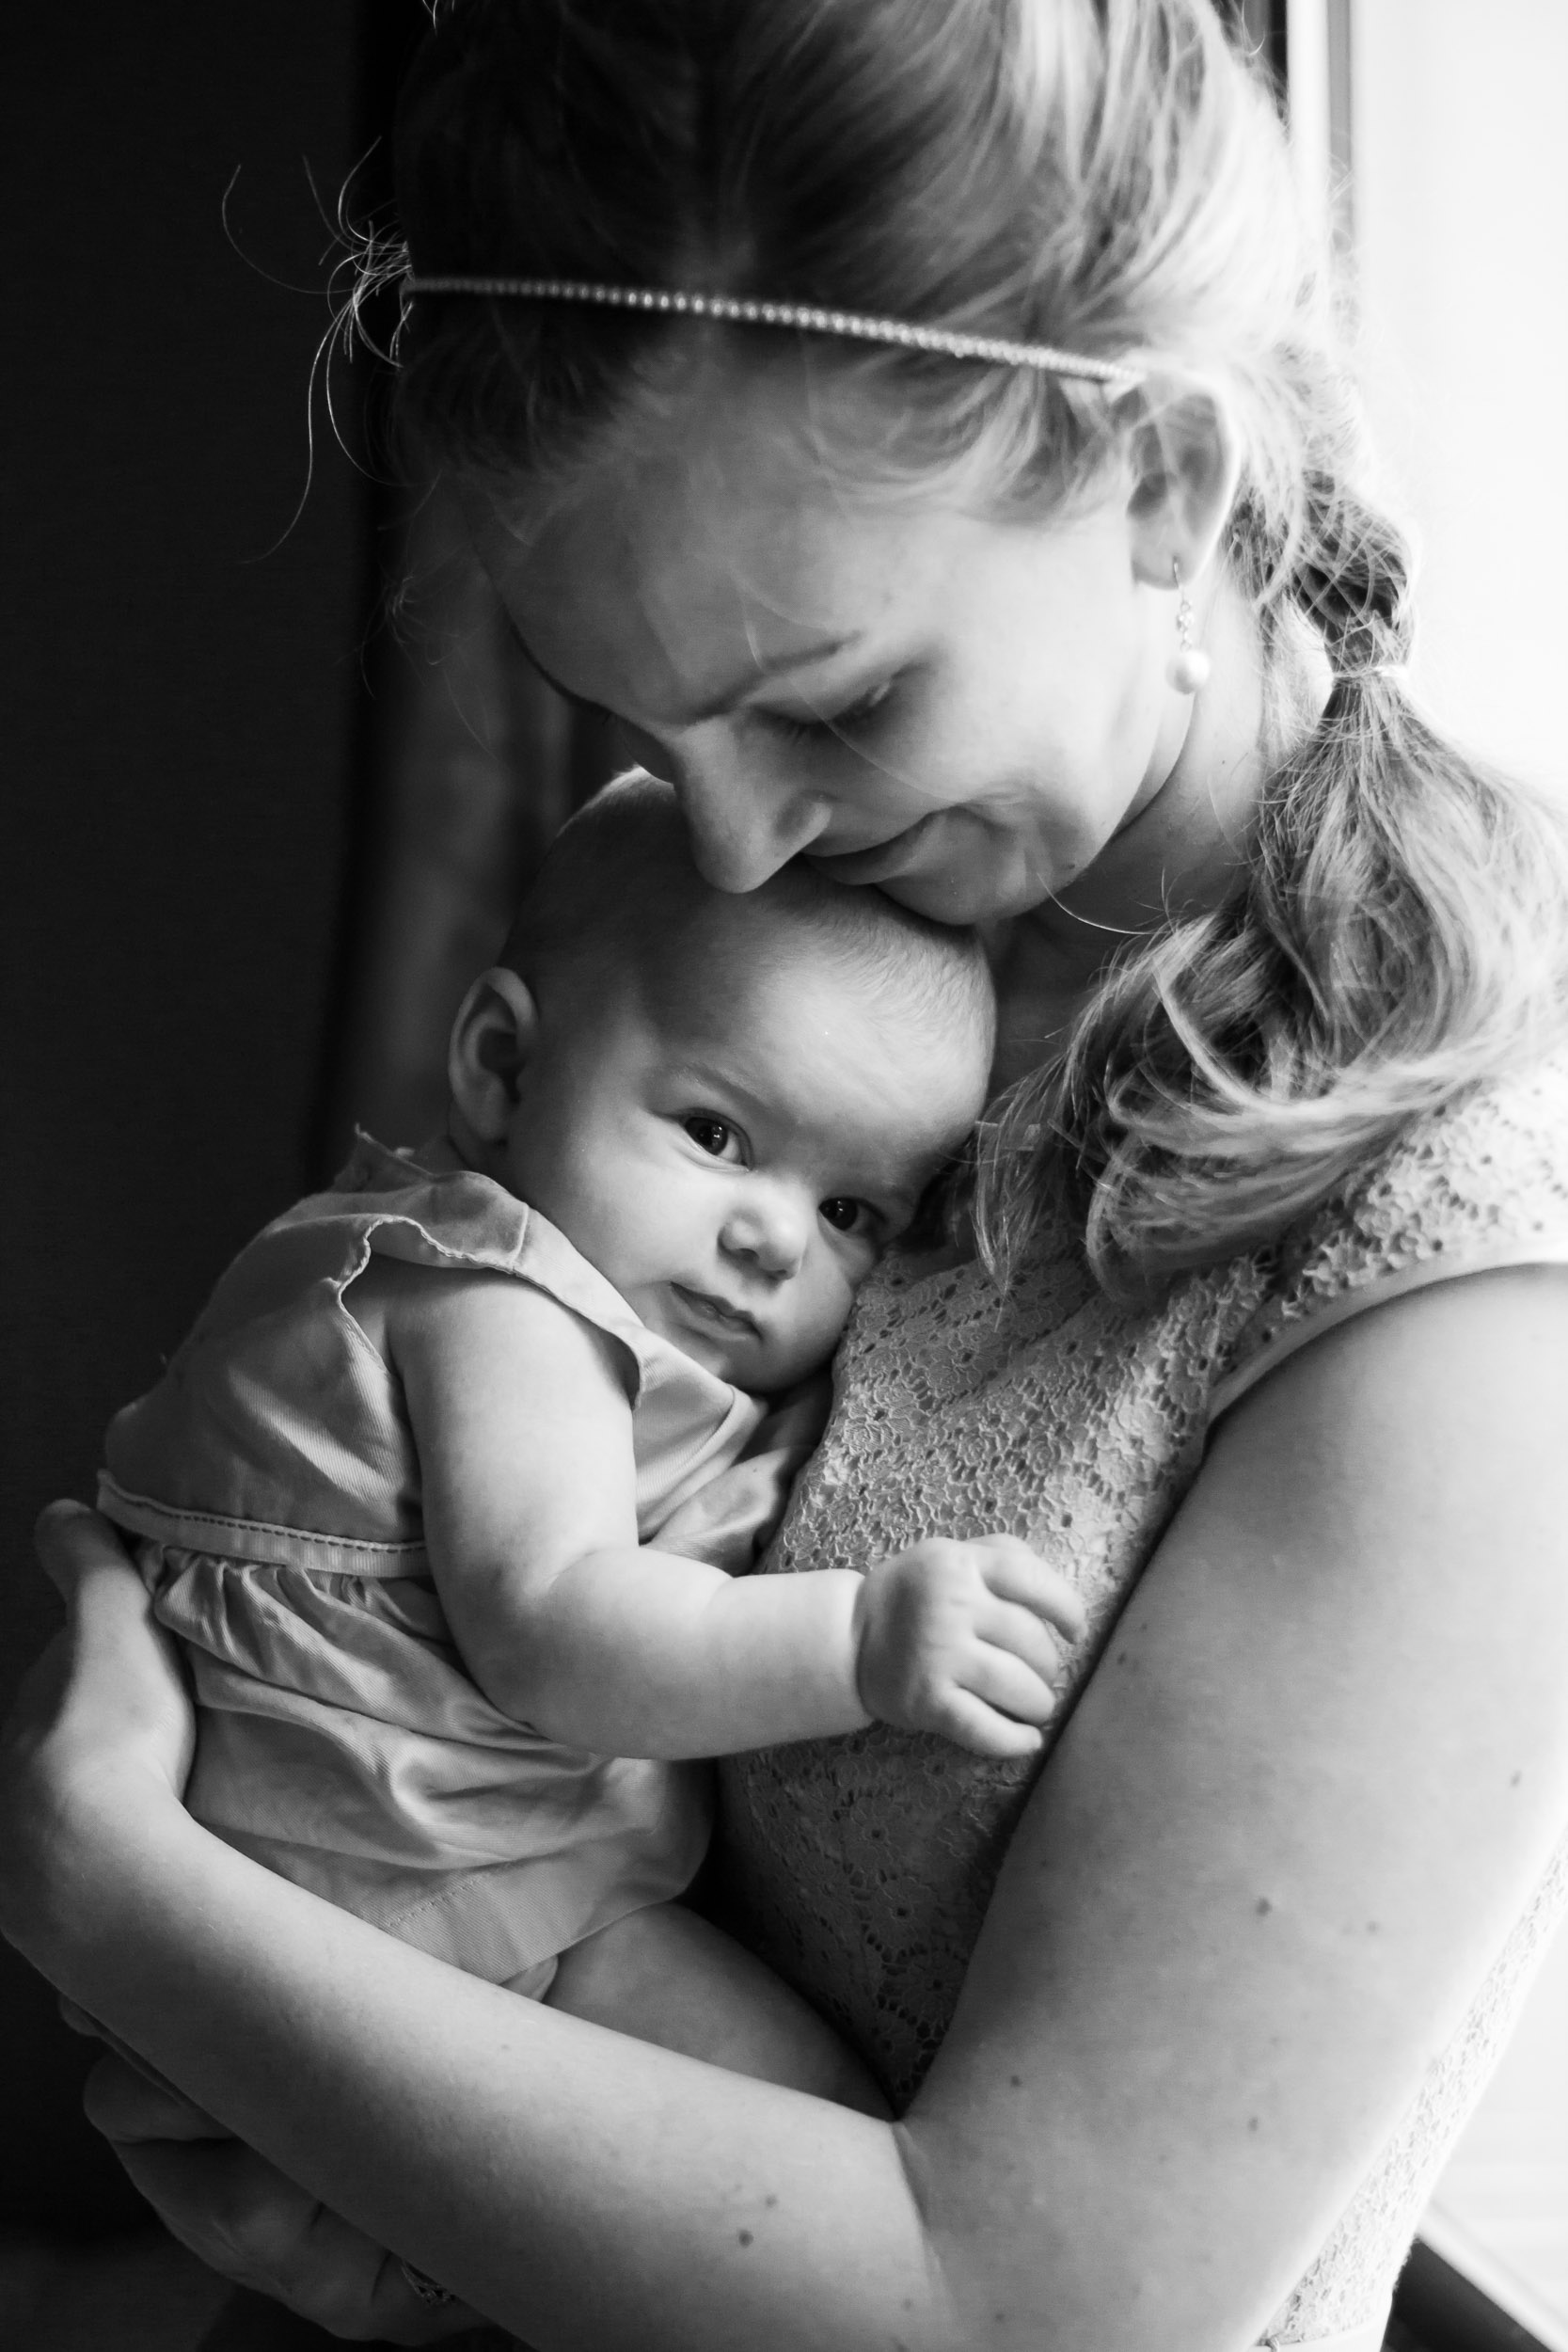 Seattle Lifestyle Family Photography   By G. Lin Photography   Mother holding baby in arms by window